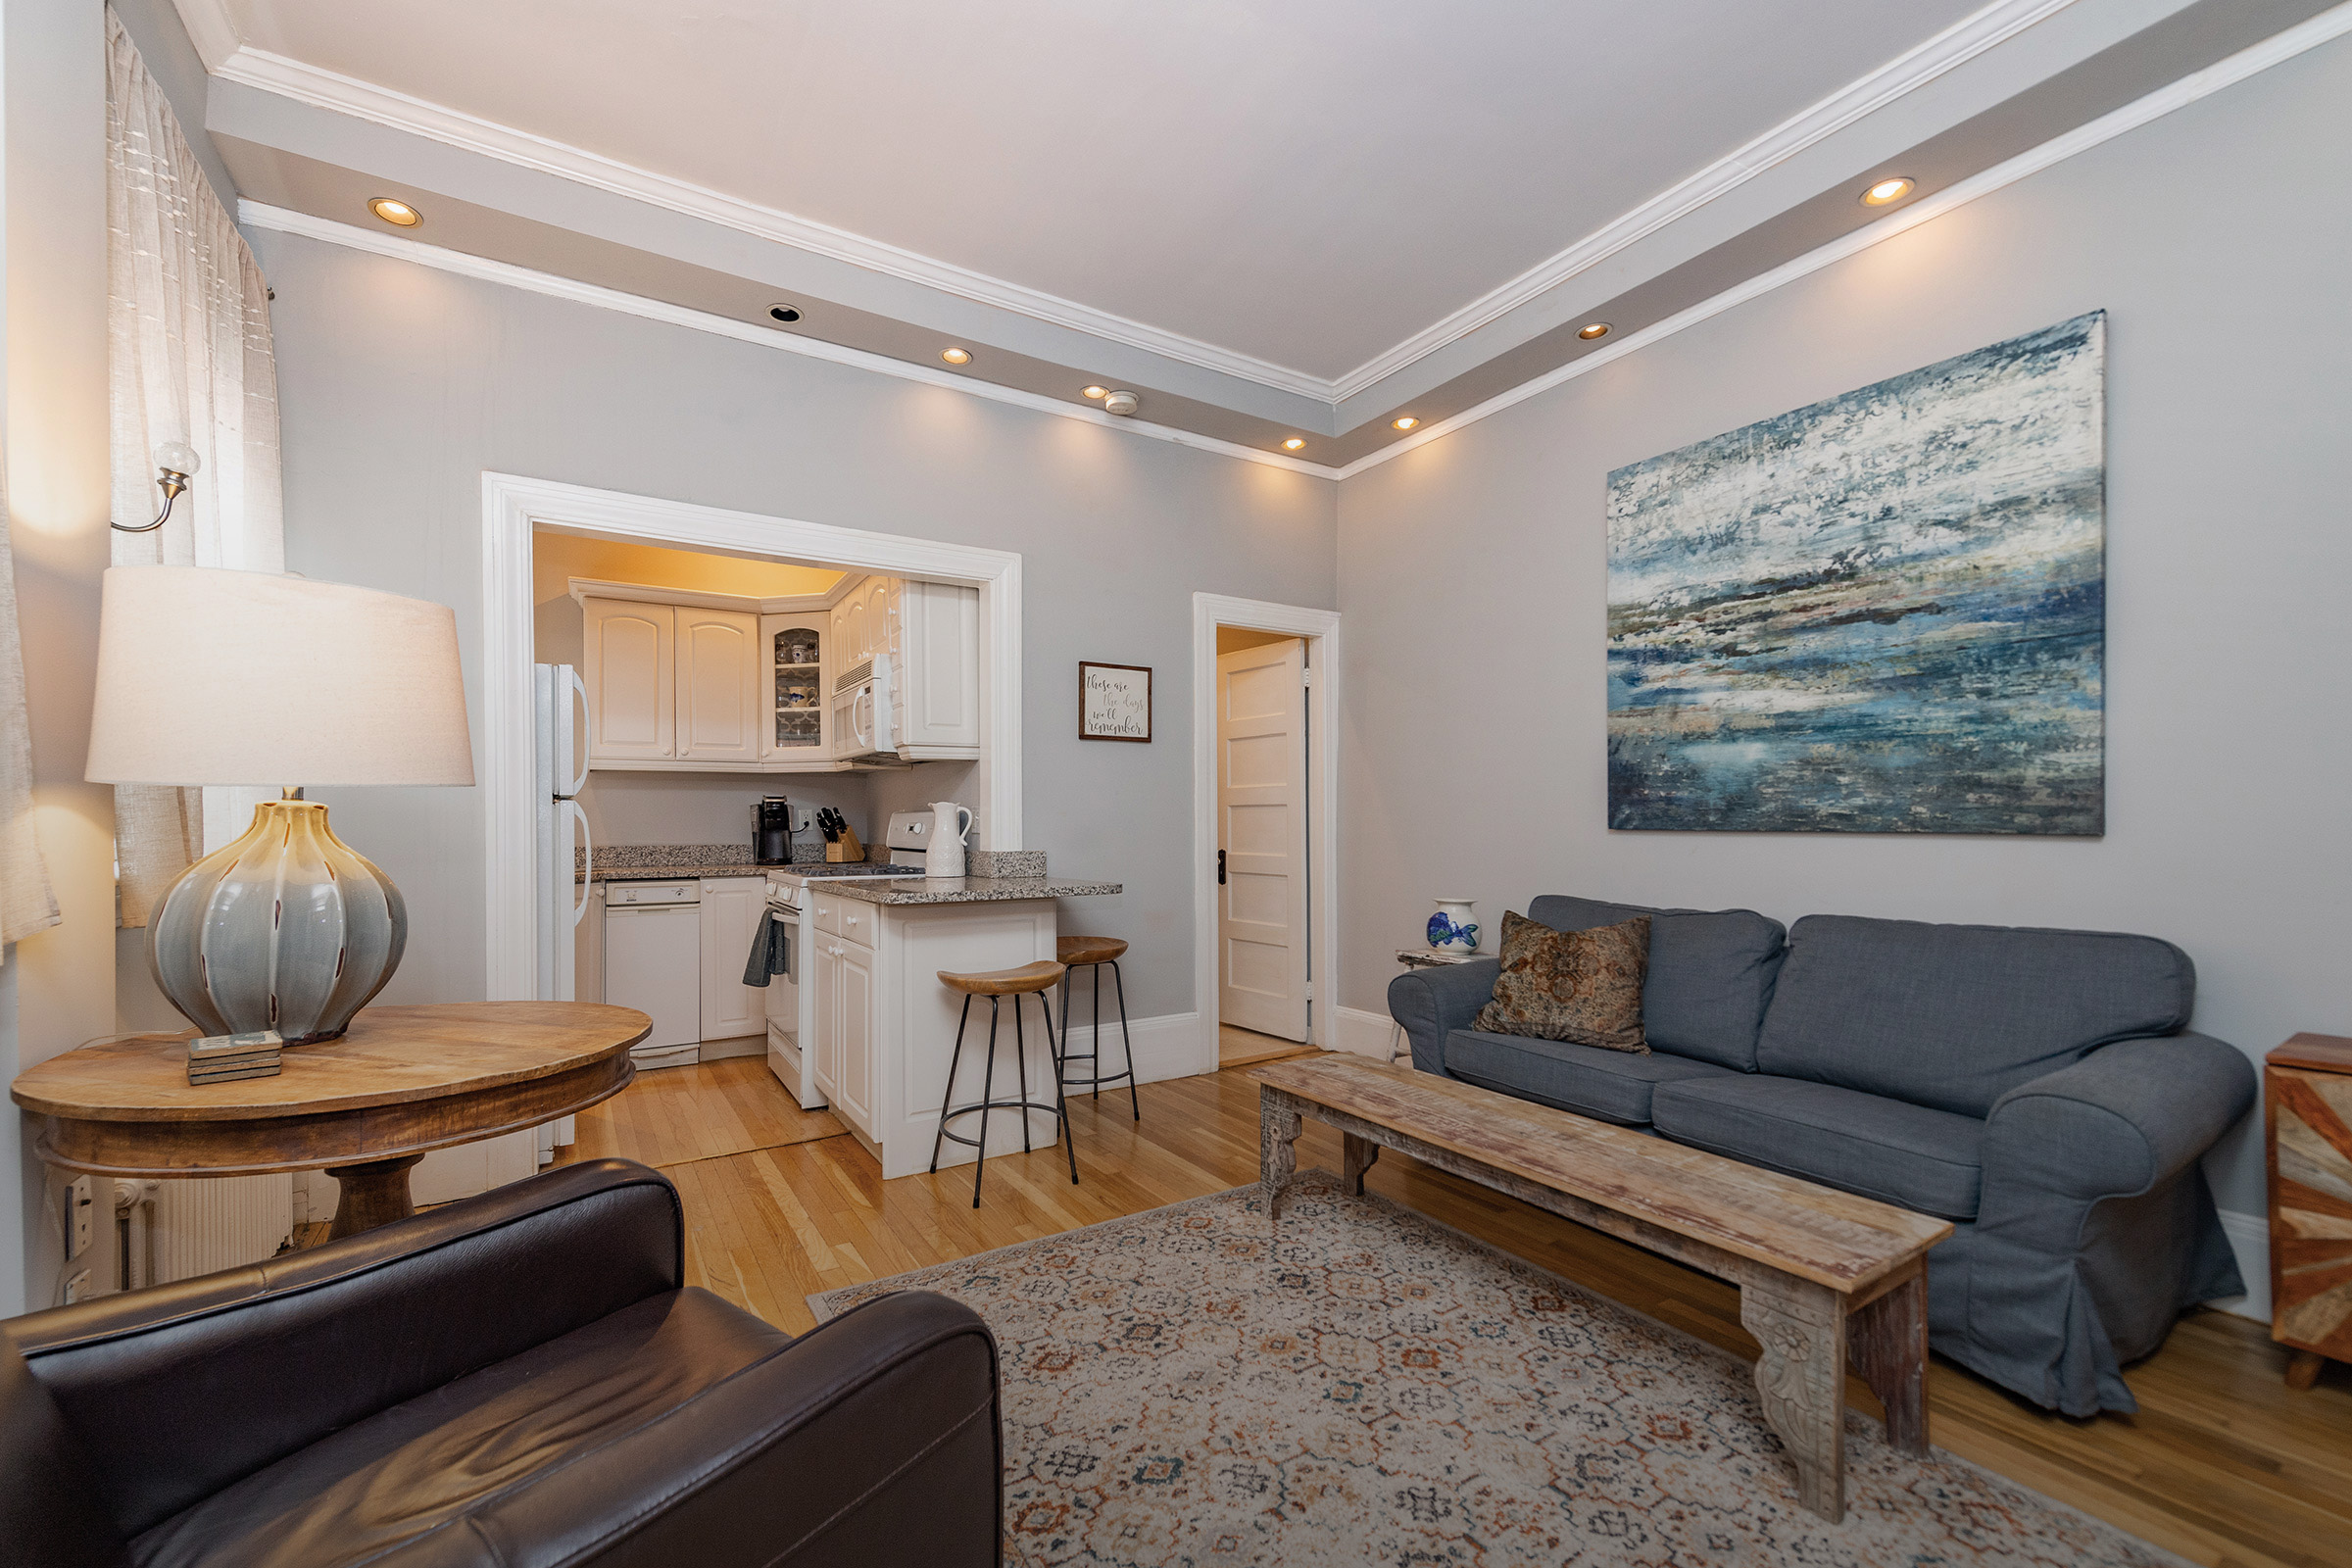 386 Comm Ave Back Bay Boston For Sale - 2